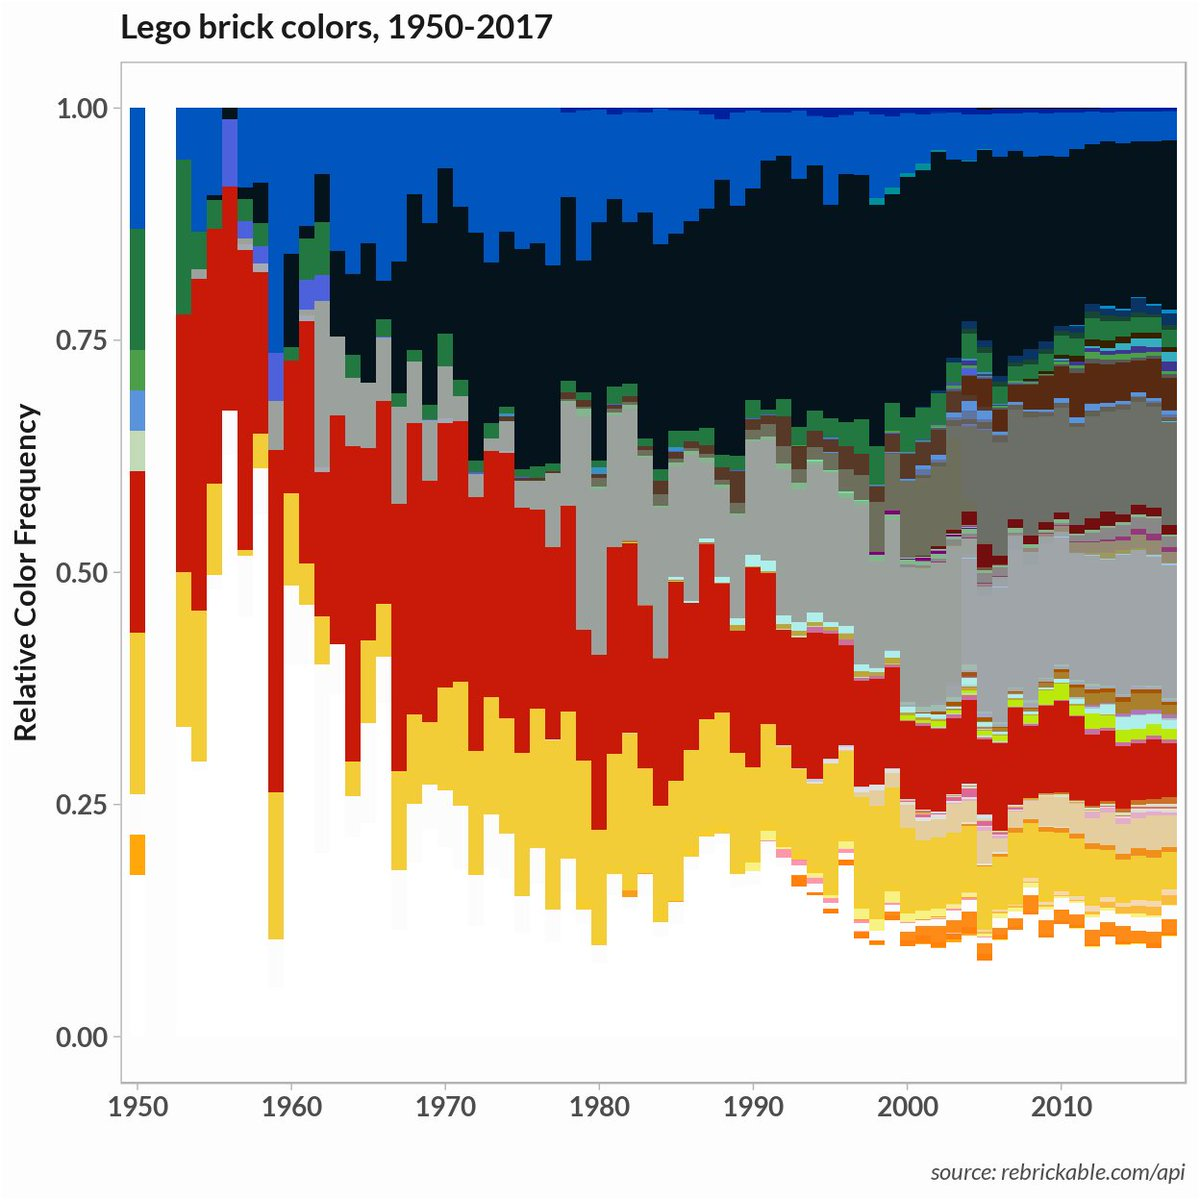 Lego color themes as topic models. #DataScience #BigData #MachineLearning #TextMining   https:// nateaff.com/2017/09/11/leg o-topic-models/ &nbsp; … <br>http://pic.twitter.com/k1OwJ25exk